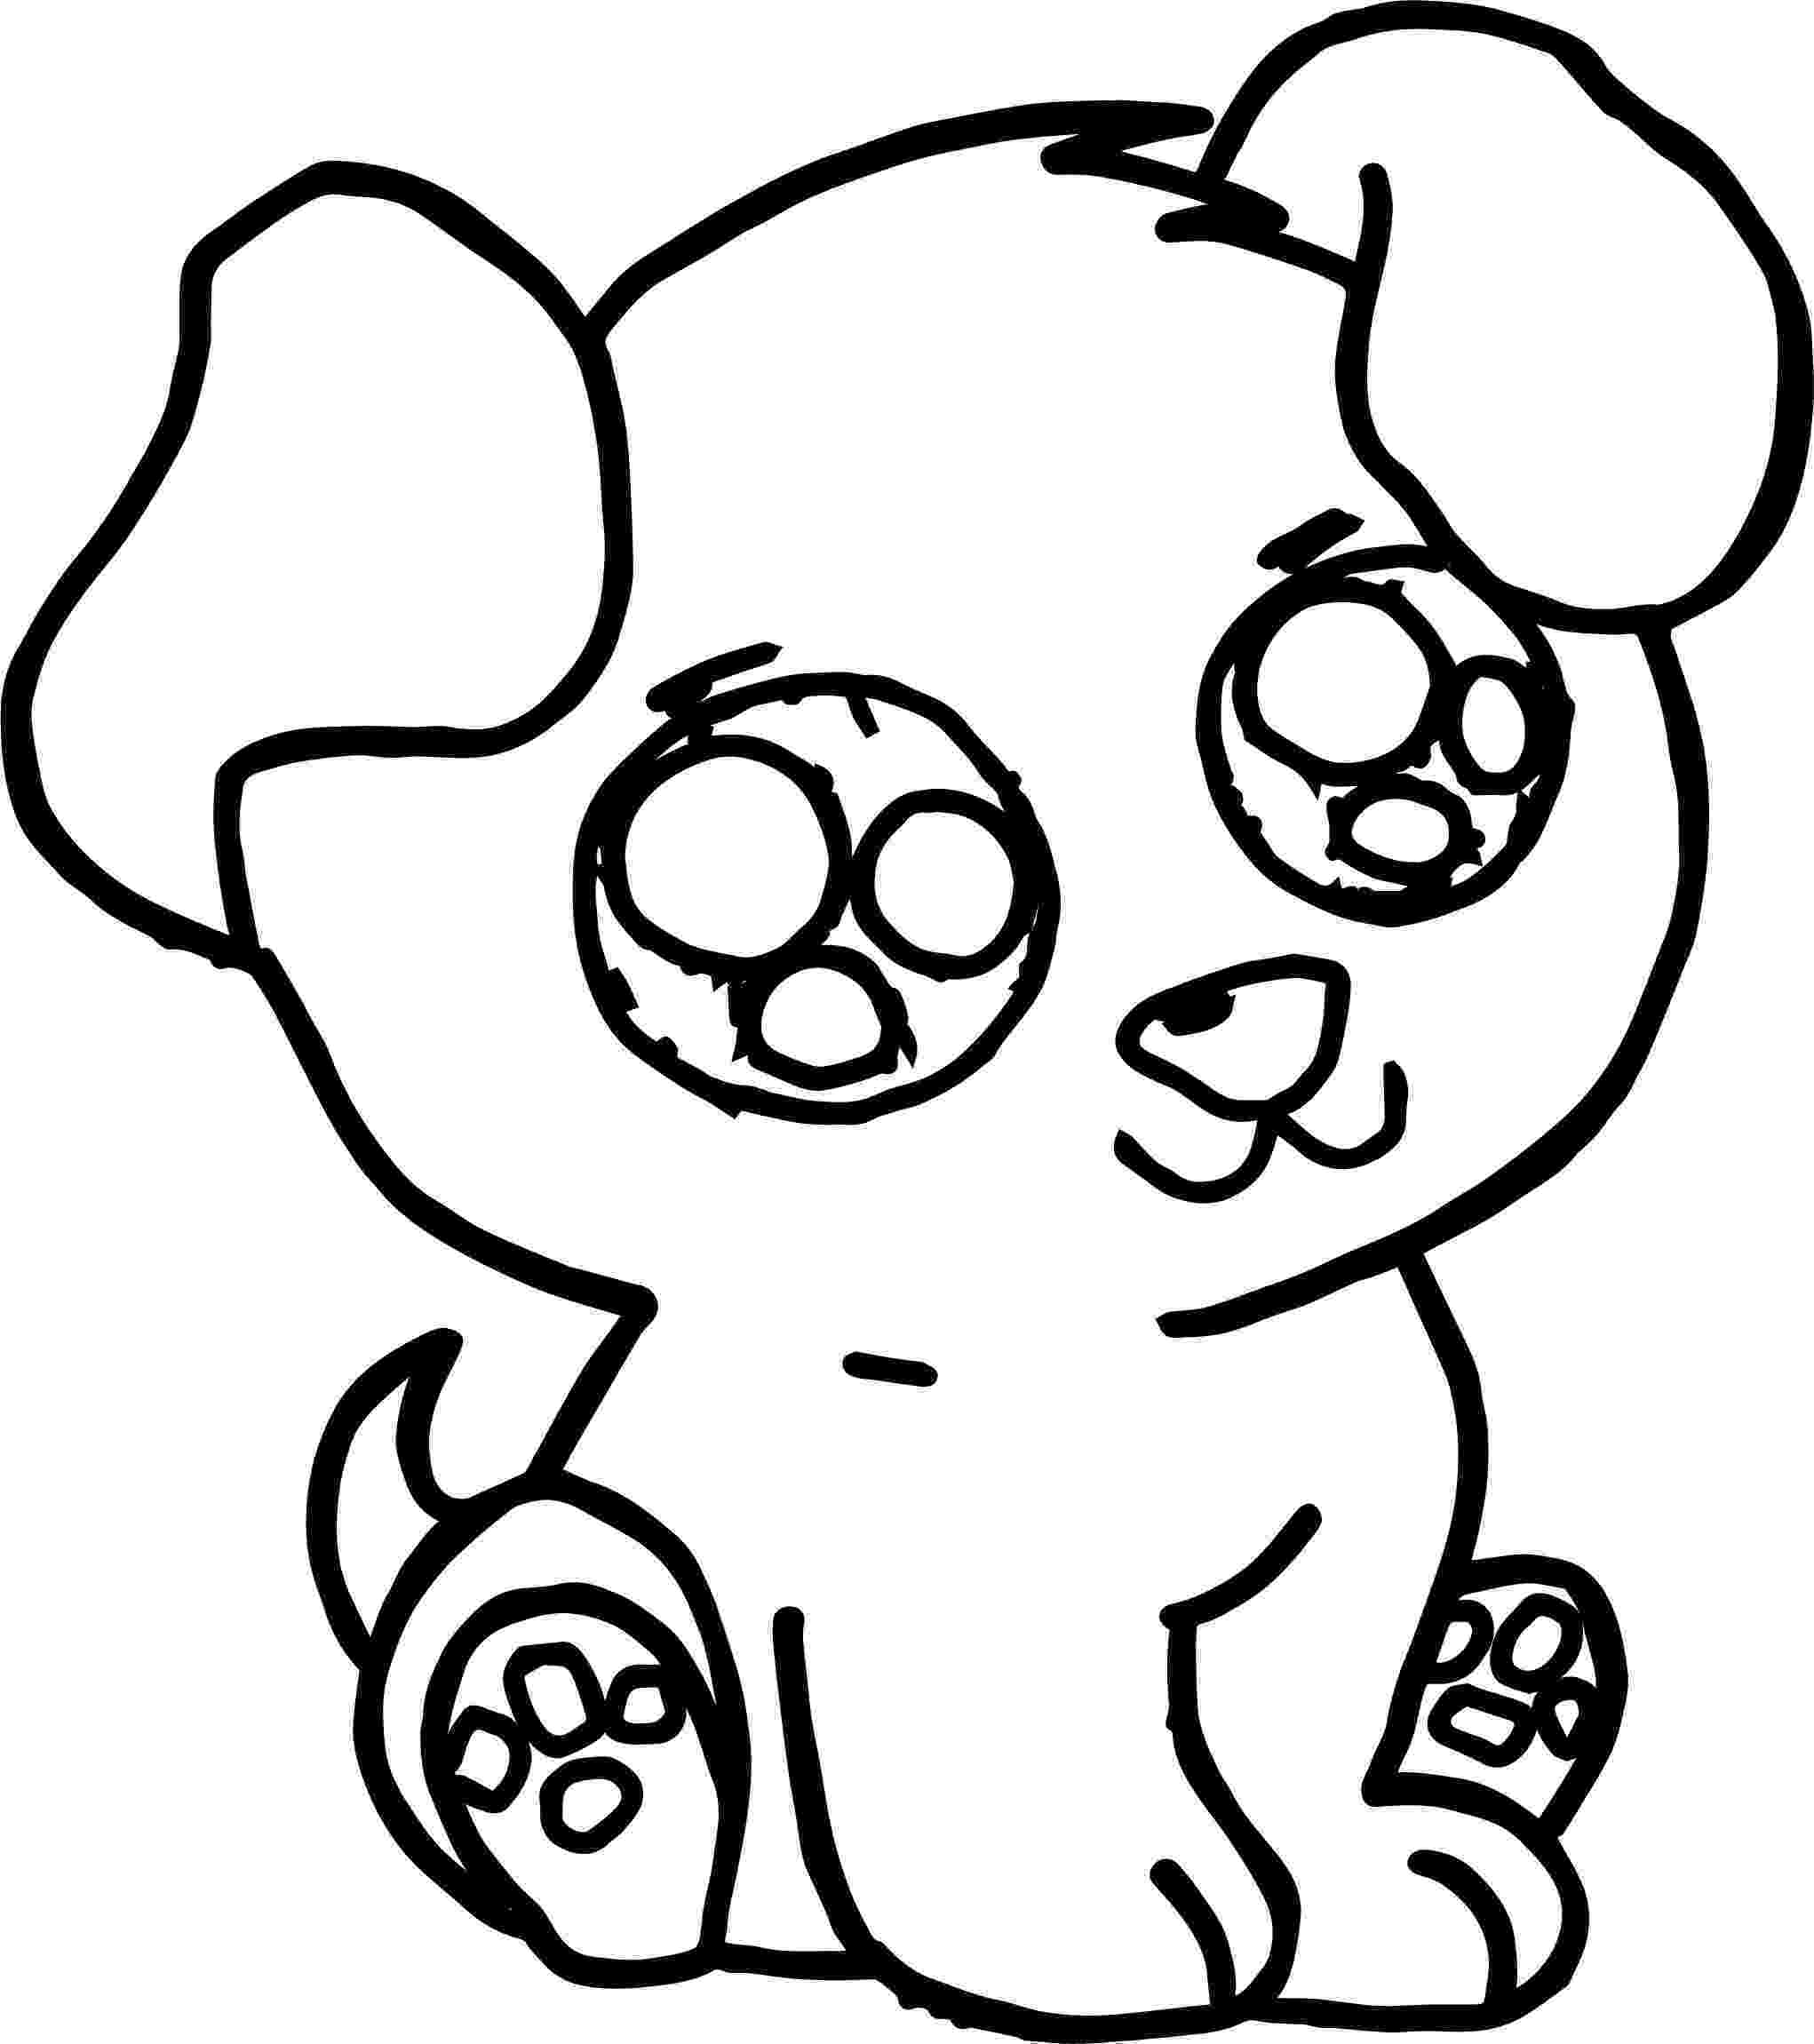 dog paw coloring page 35 dog coloring pages breeds bones and dog houses page dog coloring paw